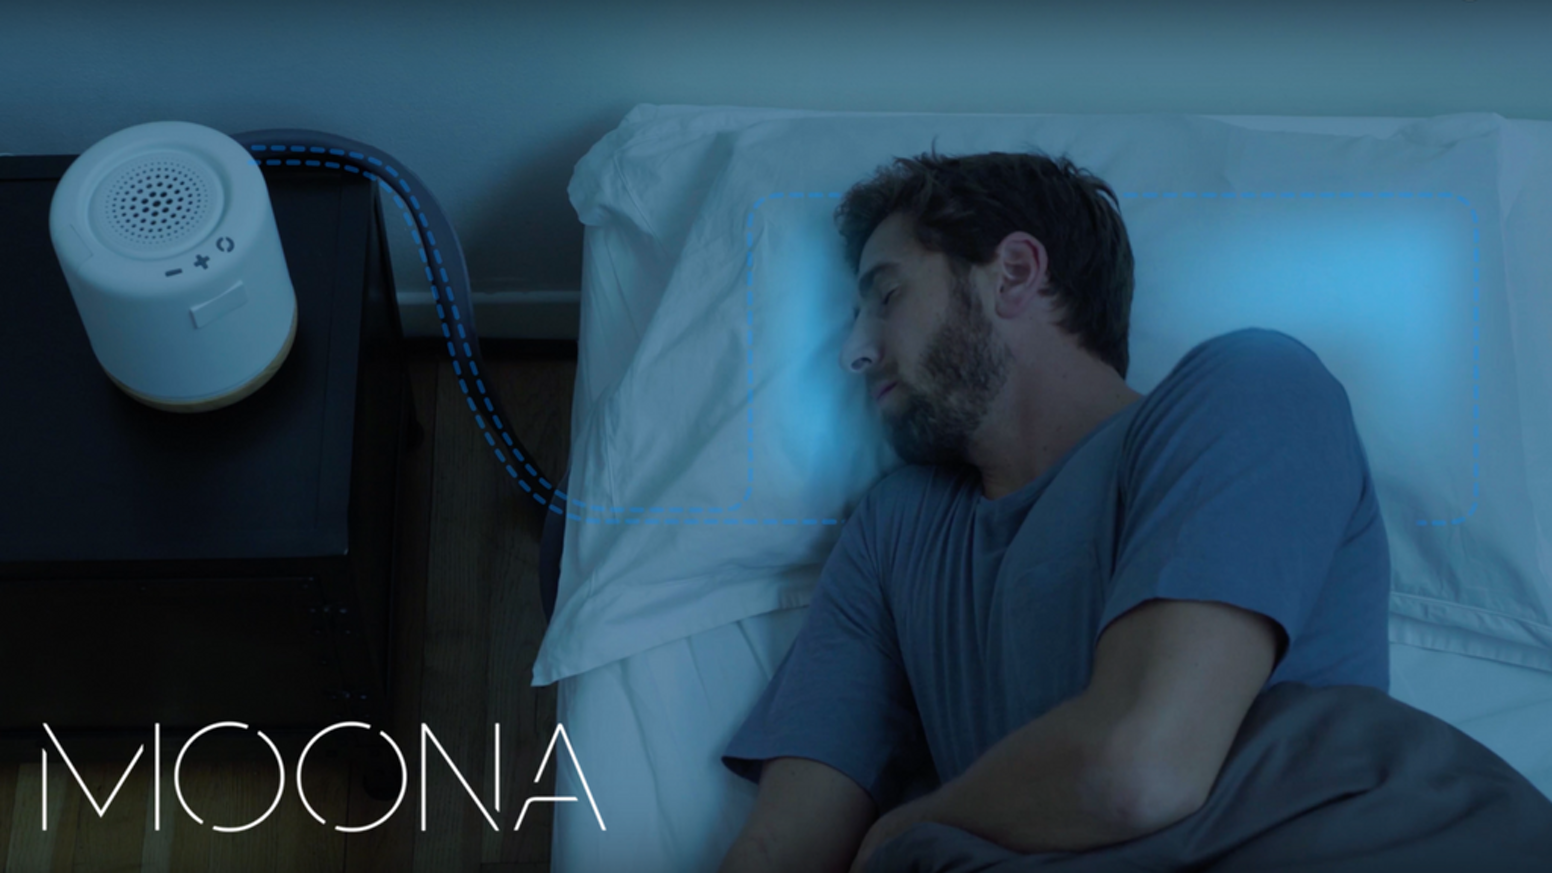 The first smart product that tracks sleep and enhances it by regulating head temperature: sleep faster, deeper and wake up naturally.